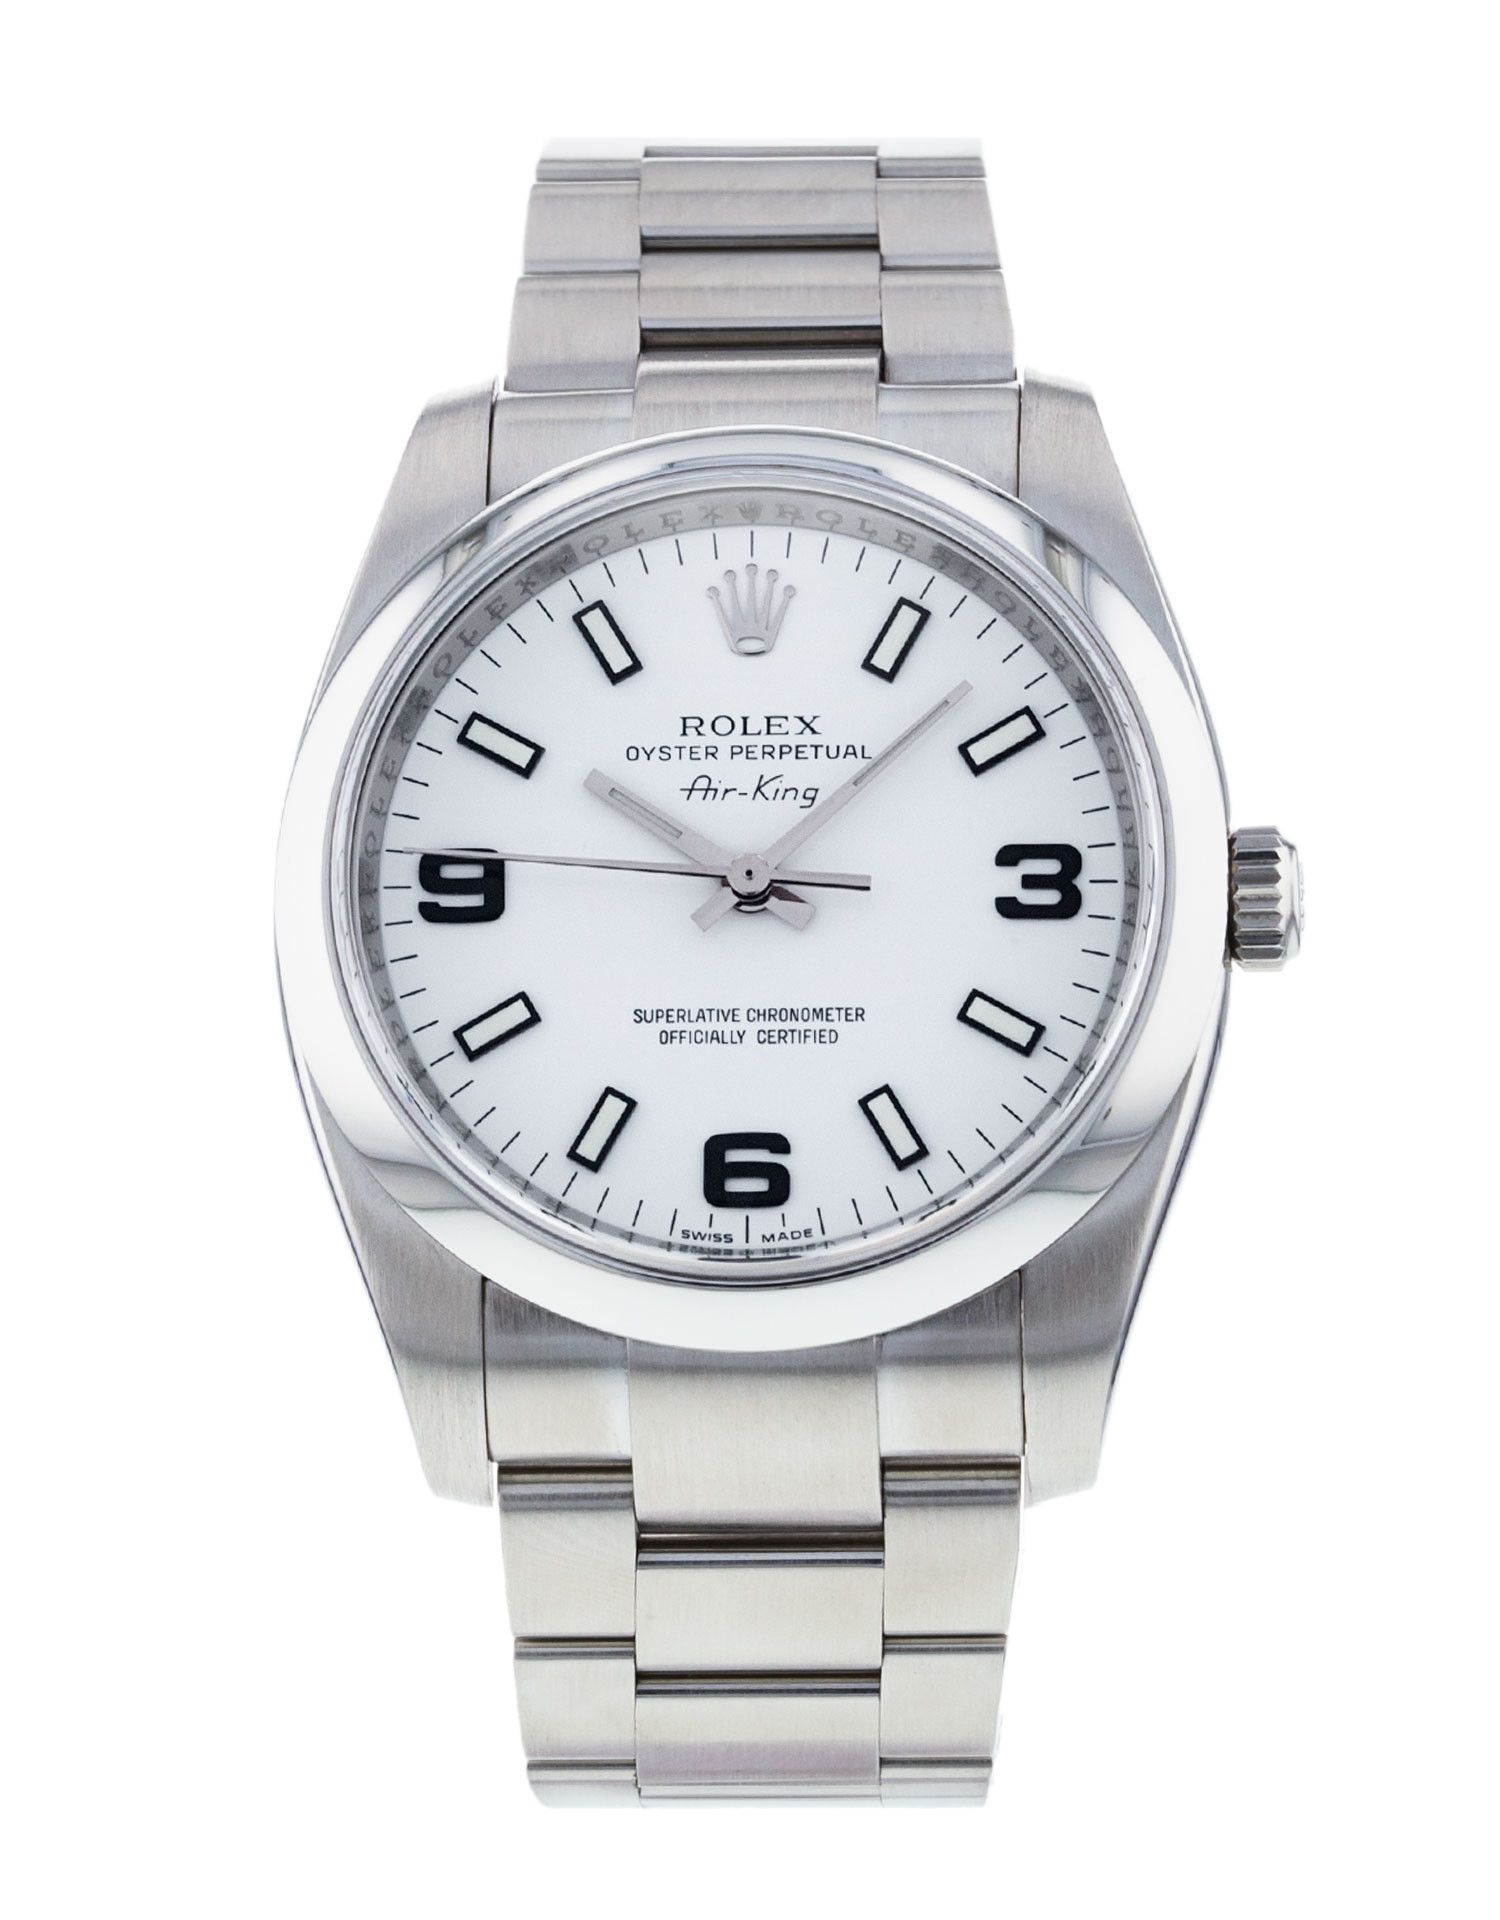 ROLEX OYSTER PERPETUAL AIR KING REFERENZA 114200